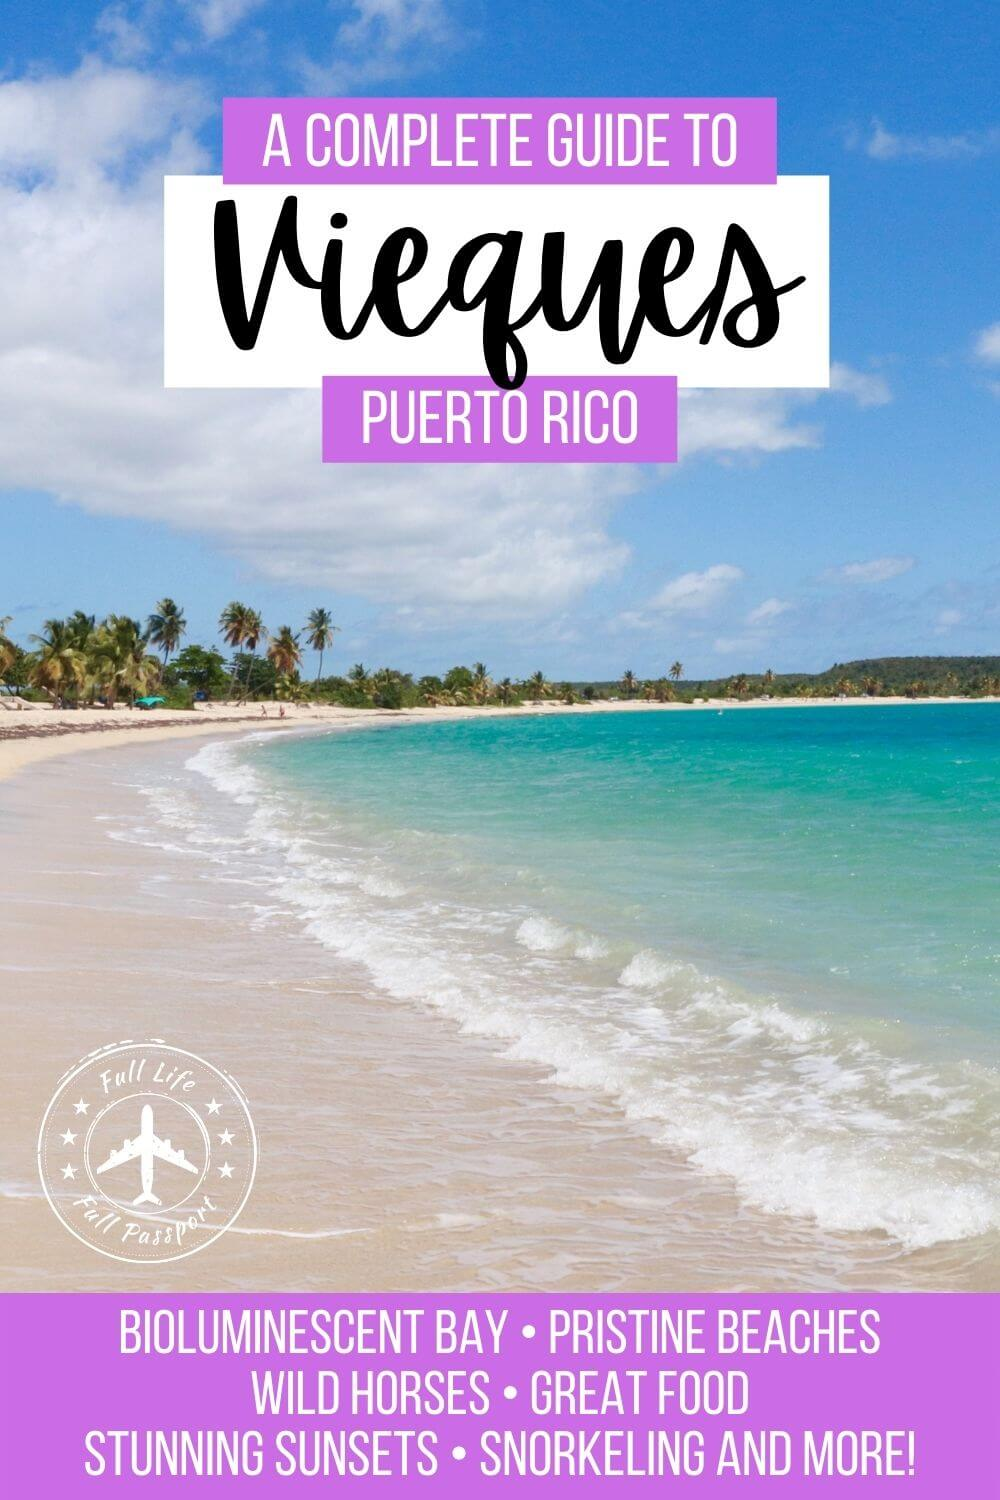 A Complete Guide to Vieques, Puerto Rico